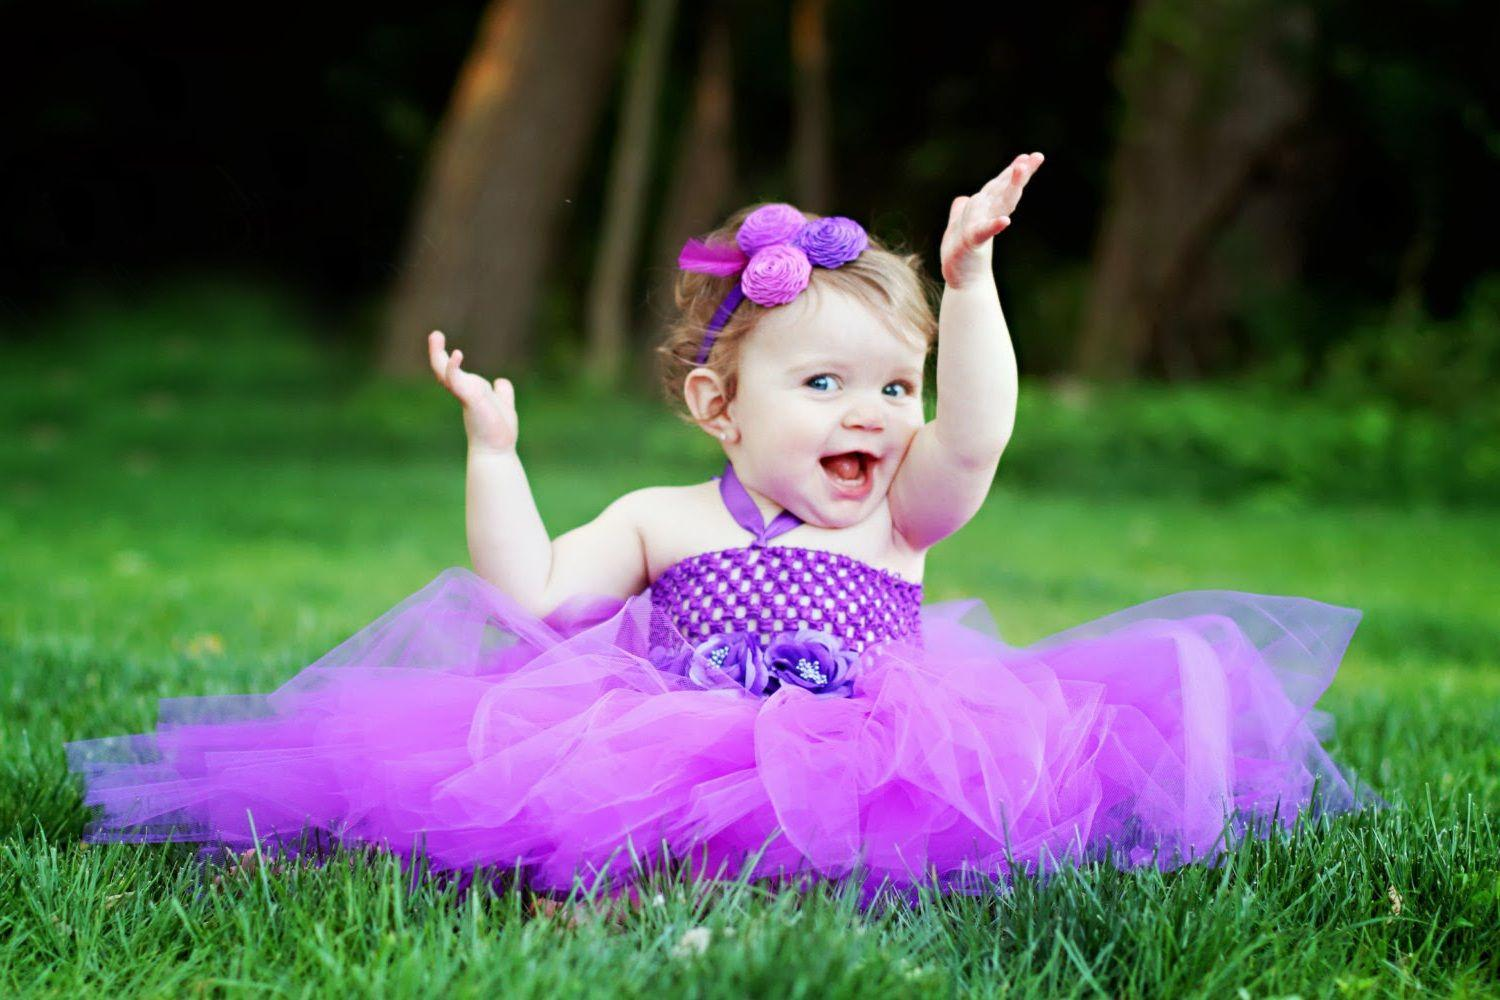 Cute Baby Smile Hd Wallpapers Pics Download: Cute Babies Wallpapers